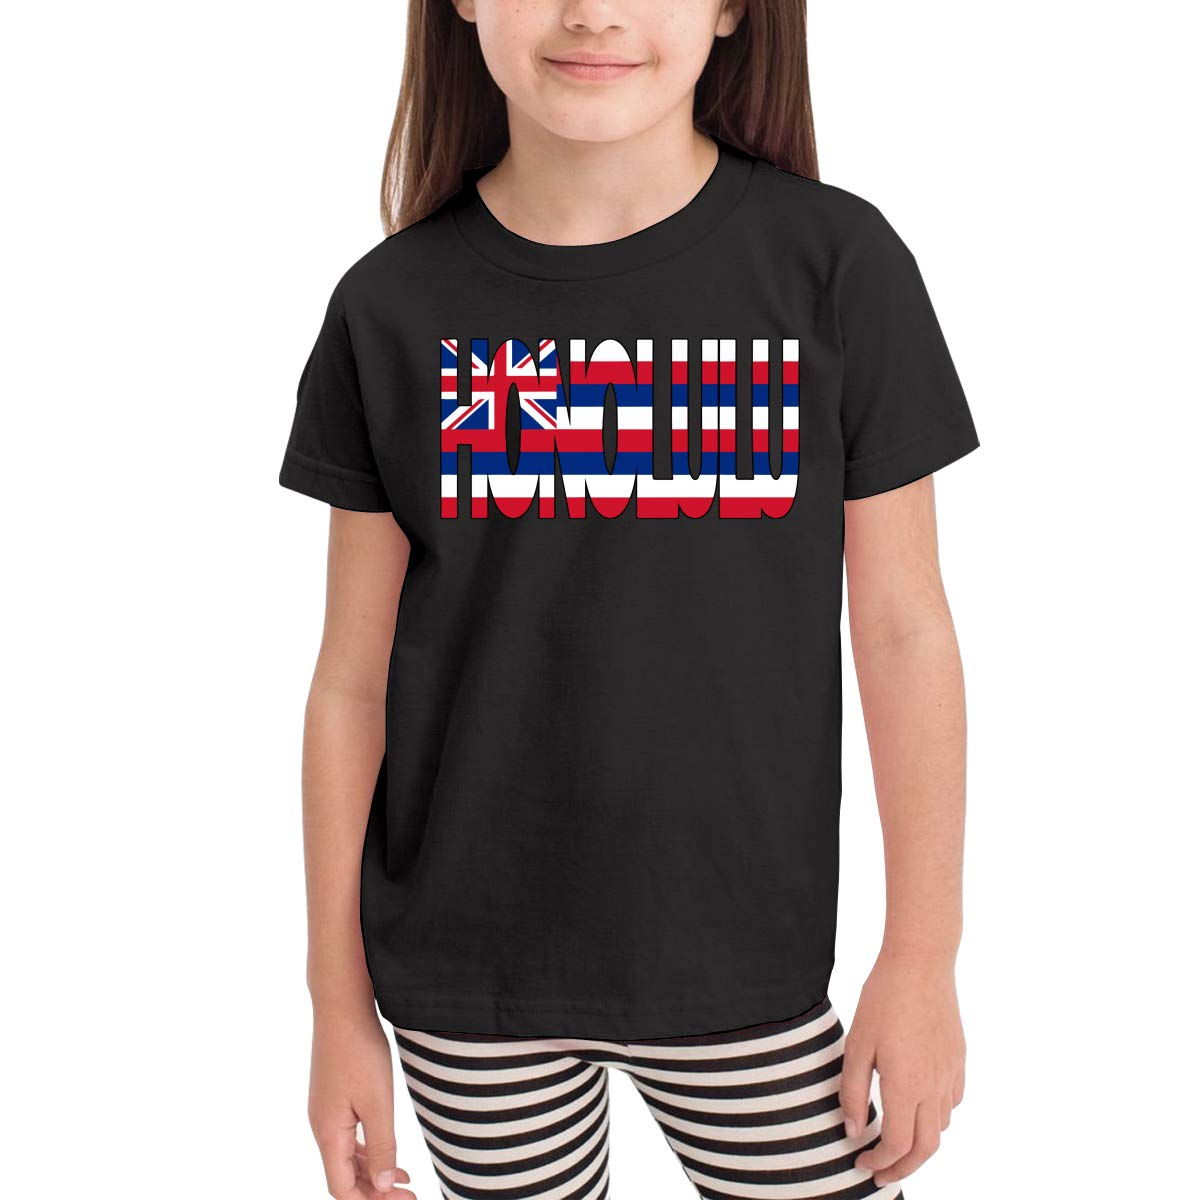 Vy91Lk-8 Short Sleeve Honolulu Hawaii Flag T-Shirts for Kids 2-6T Cute Tunic Shirt Dress